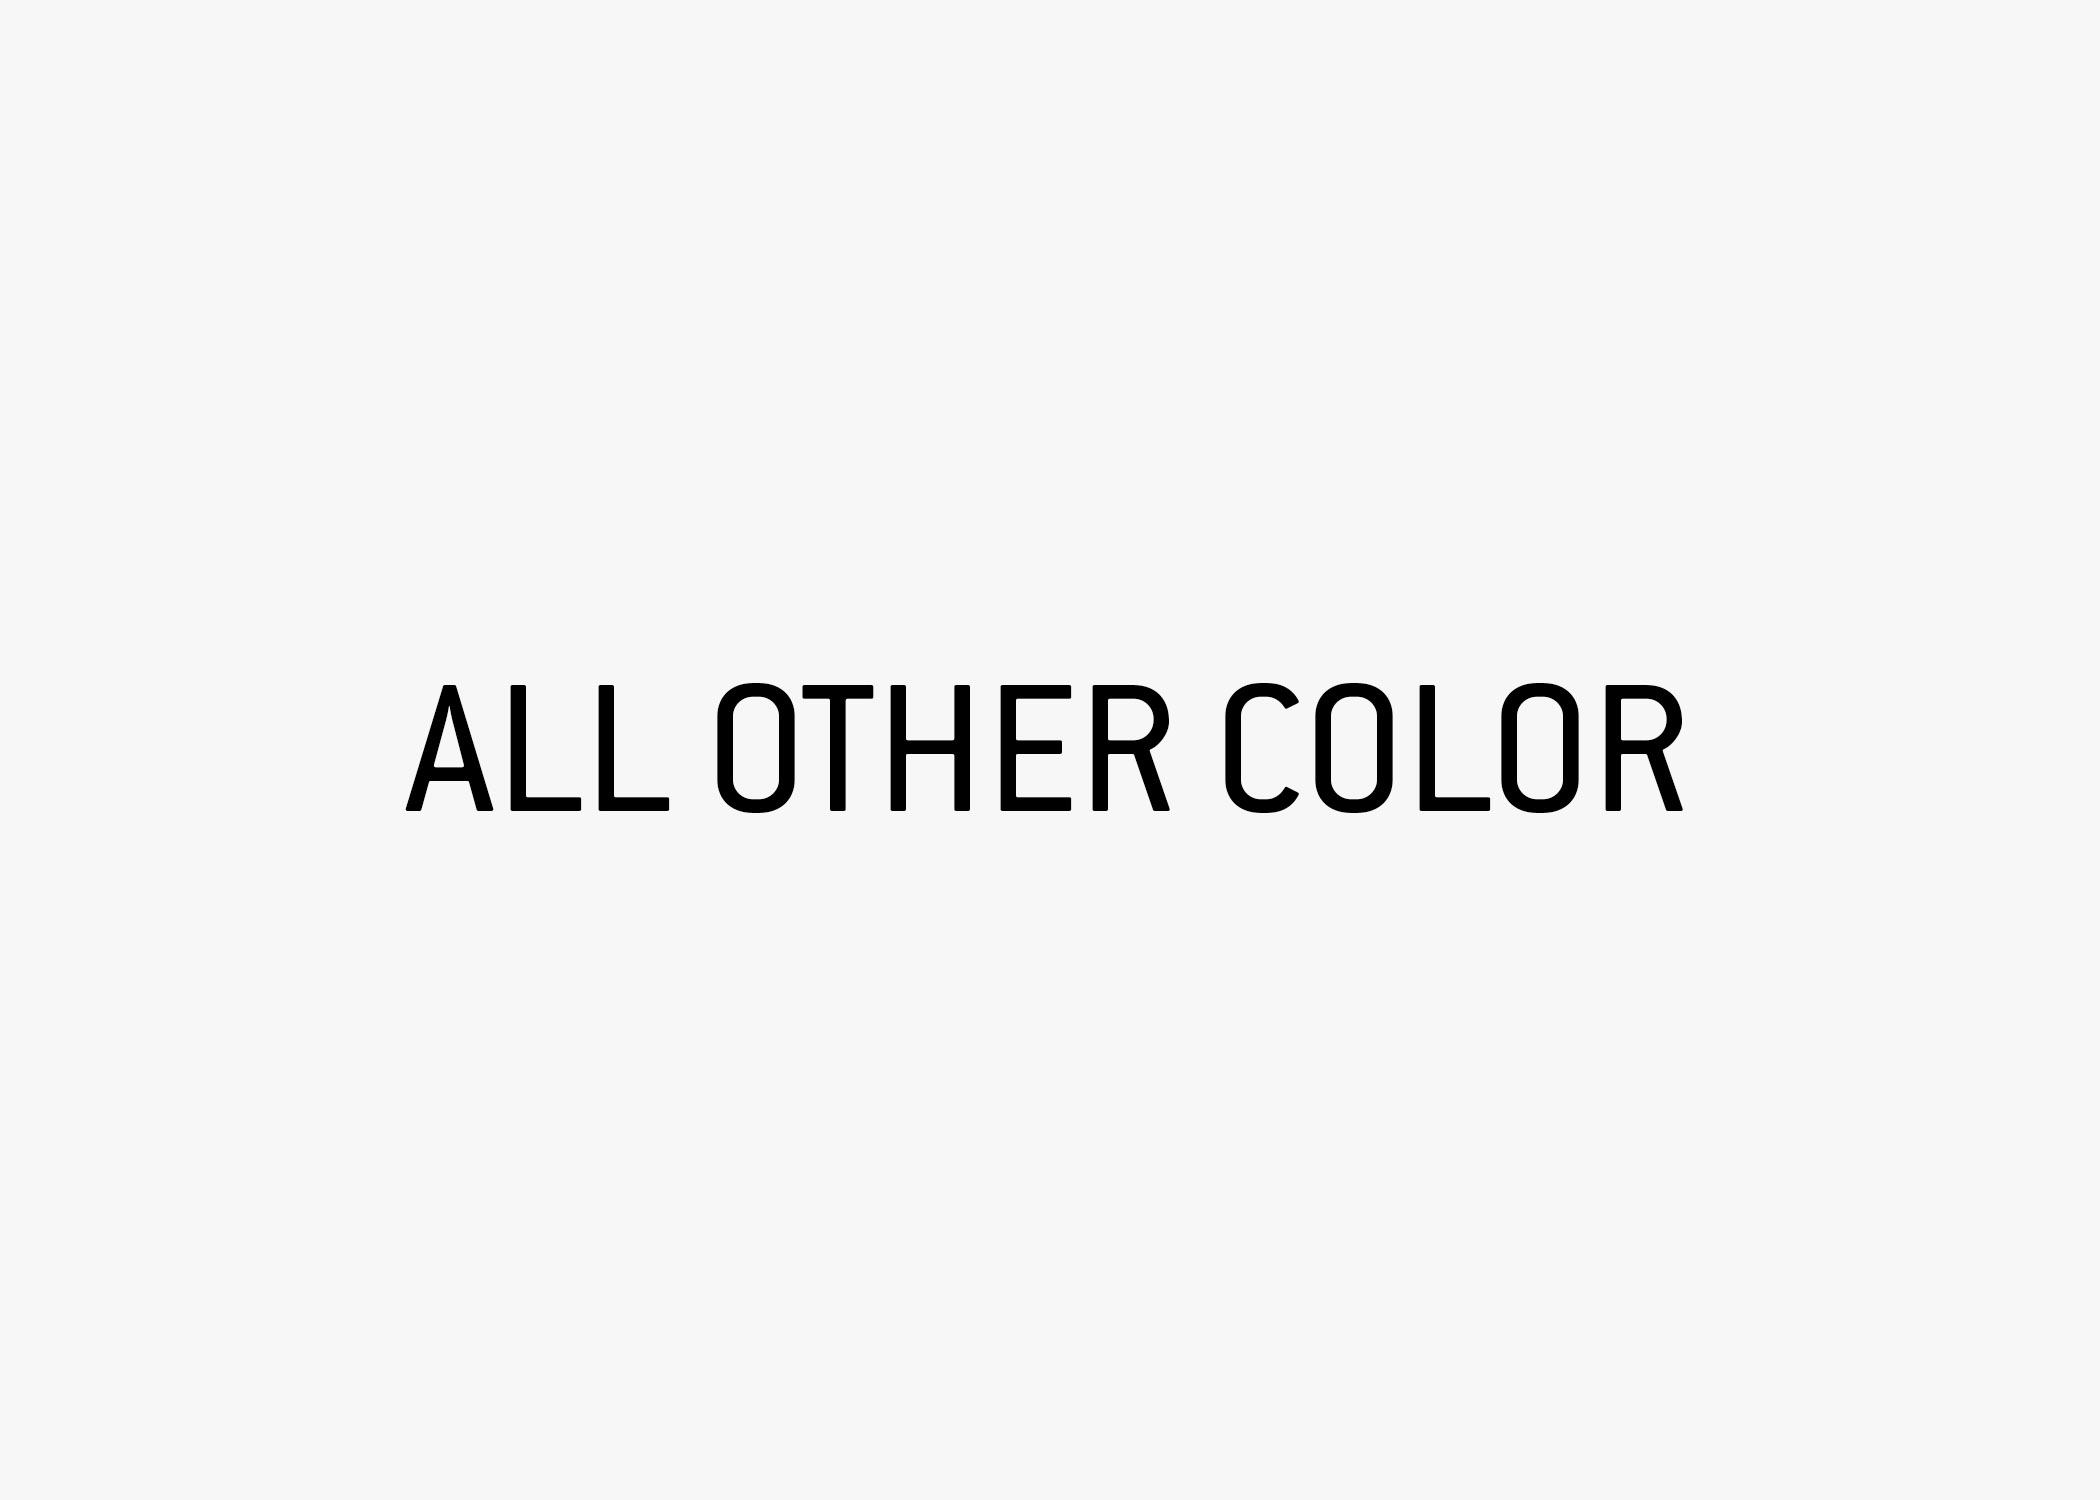 Othercolor.jpg